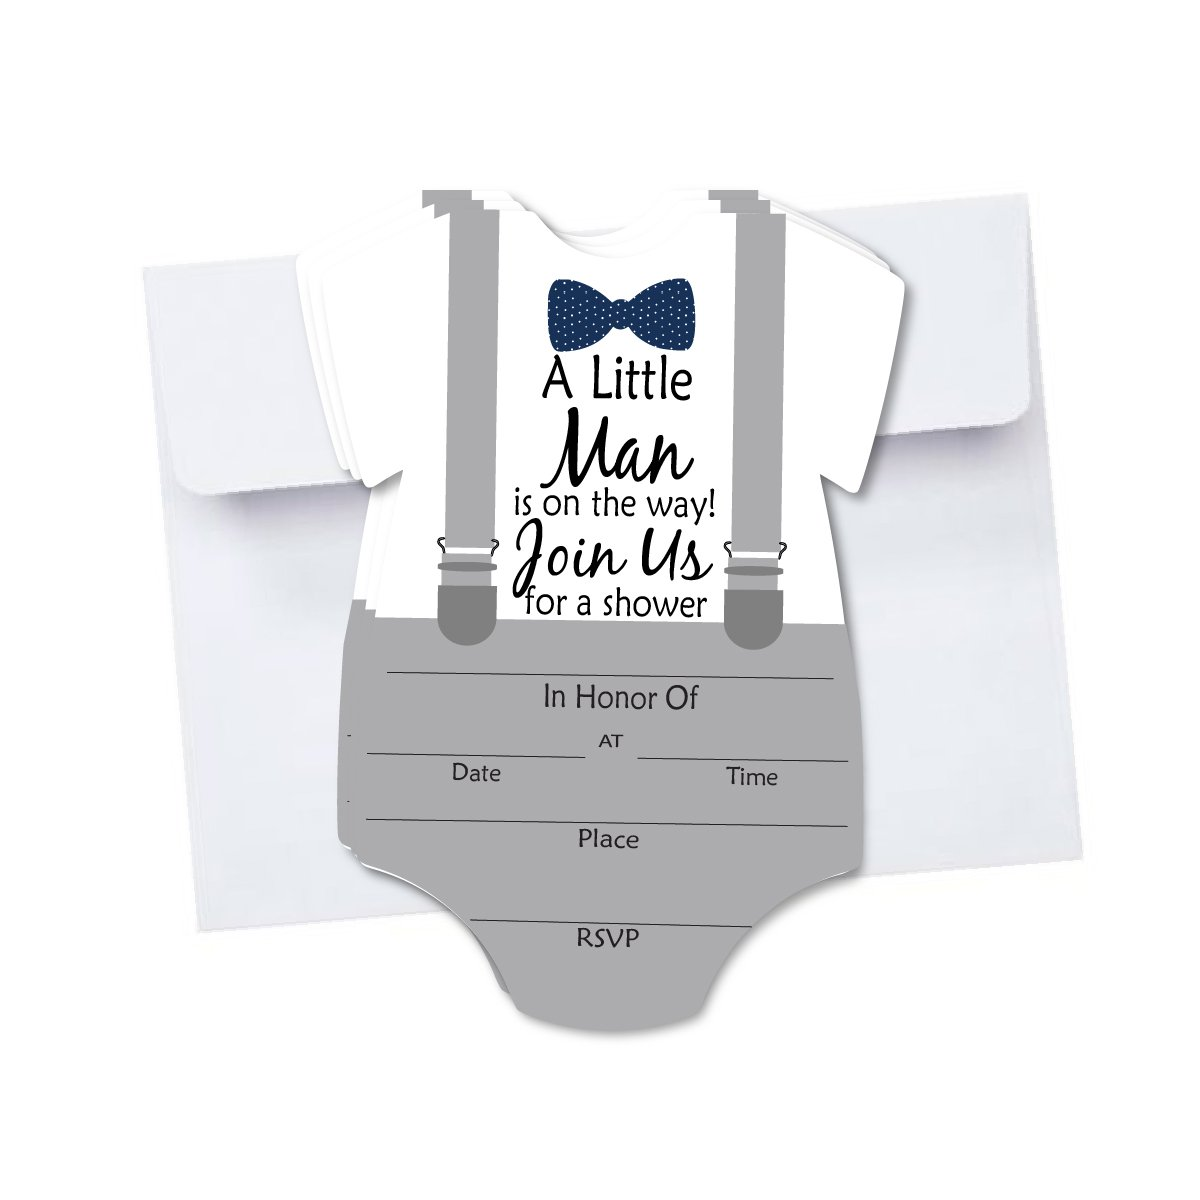 Little Man Baby Shower Blank Invites 10 Pack Fill In Invitations with Envelopes for Baby Shower Bowtie and Suspenders Gray with Navy